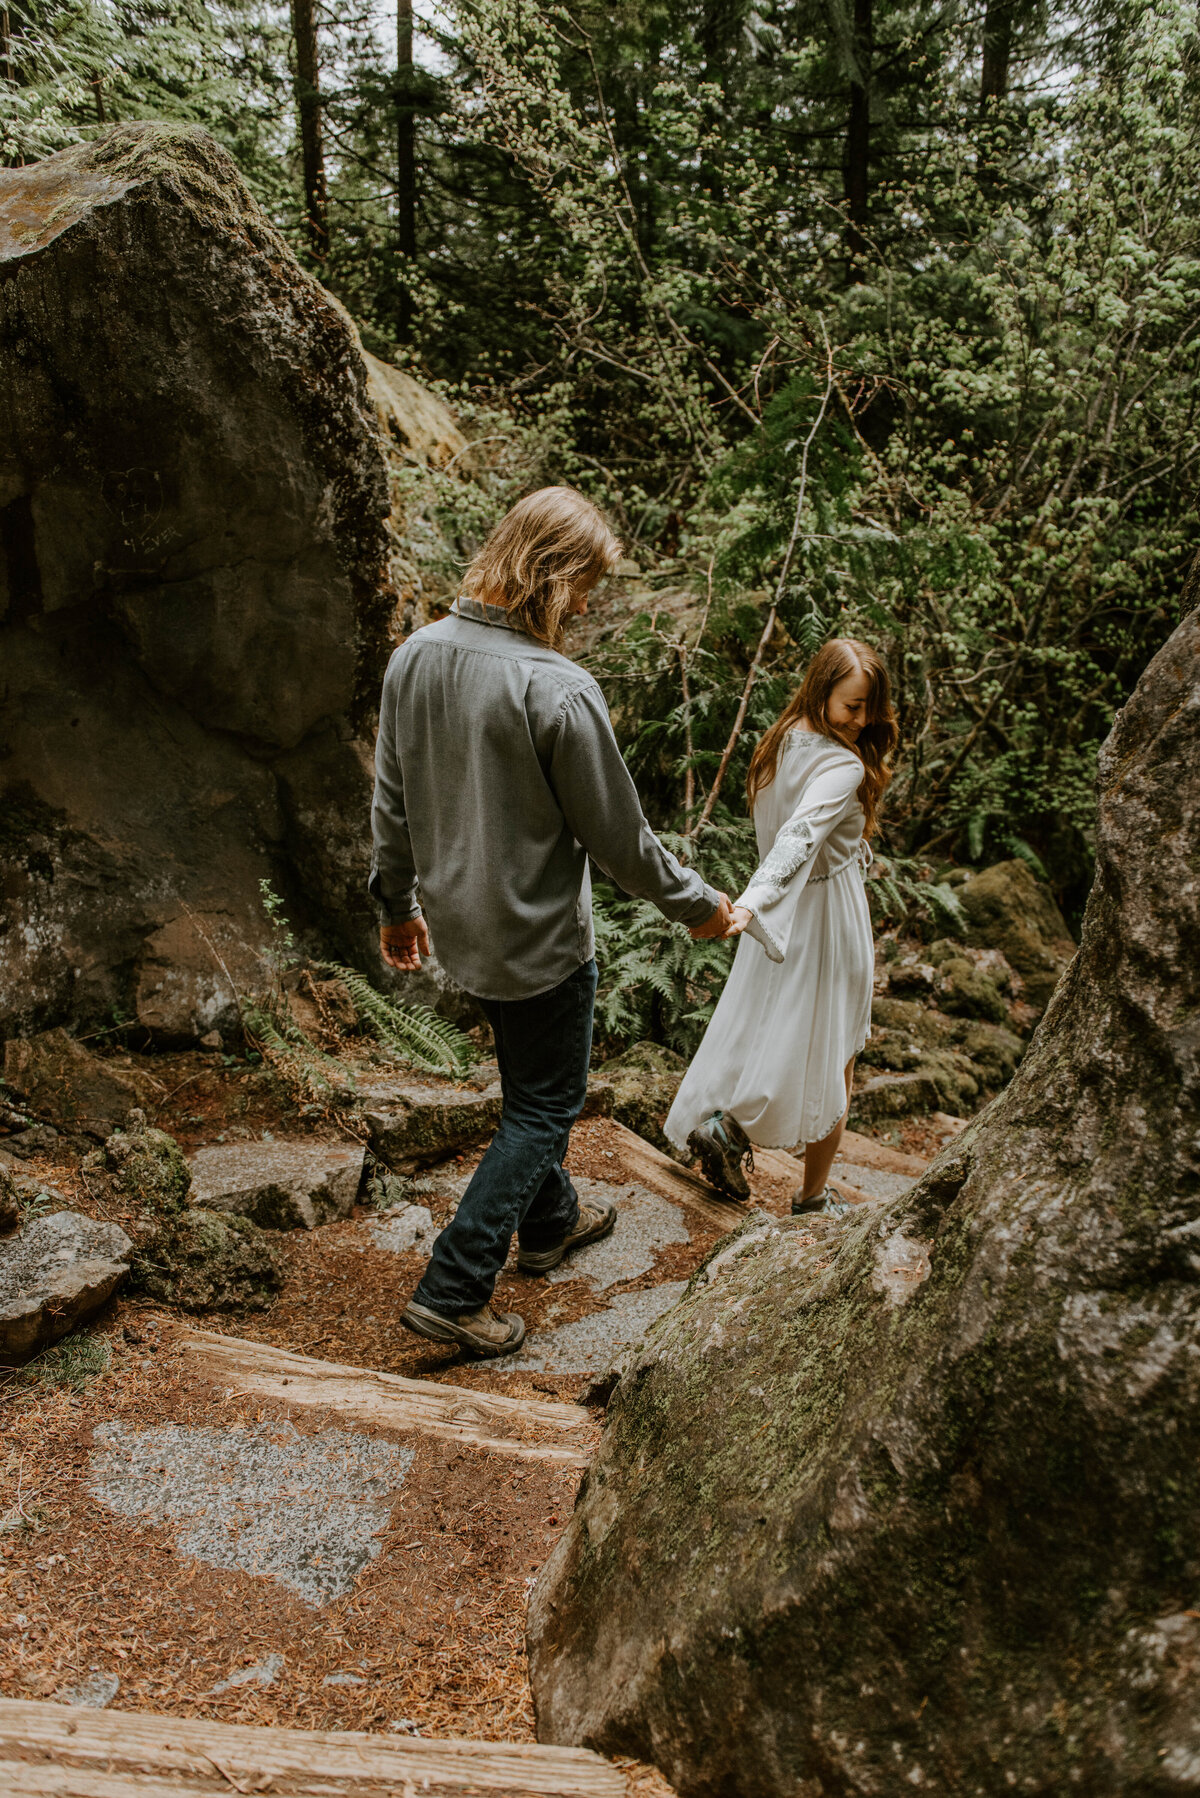 sahalie-falls-summer-oregon-photoshoot-adventure-photographer-bend-couple-forest-outfits-elopement-wedding8247